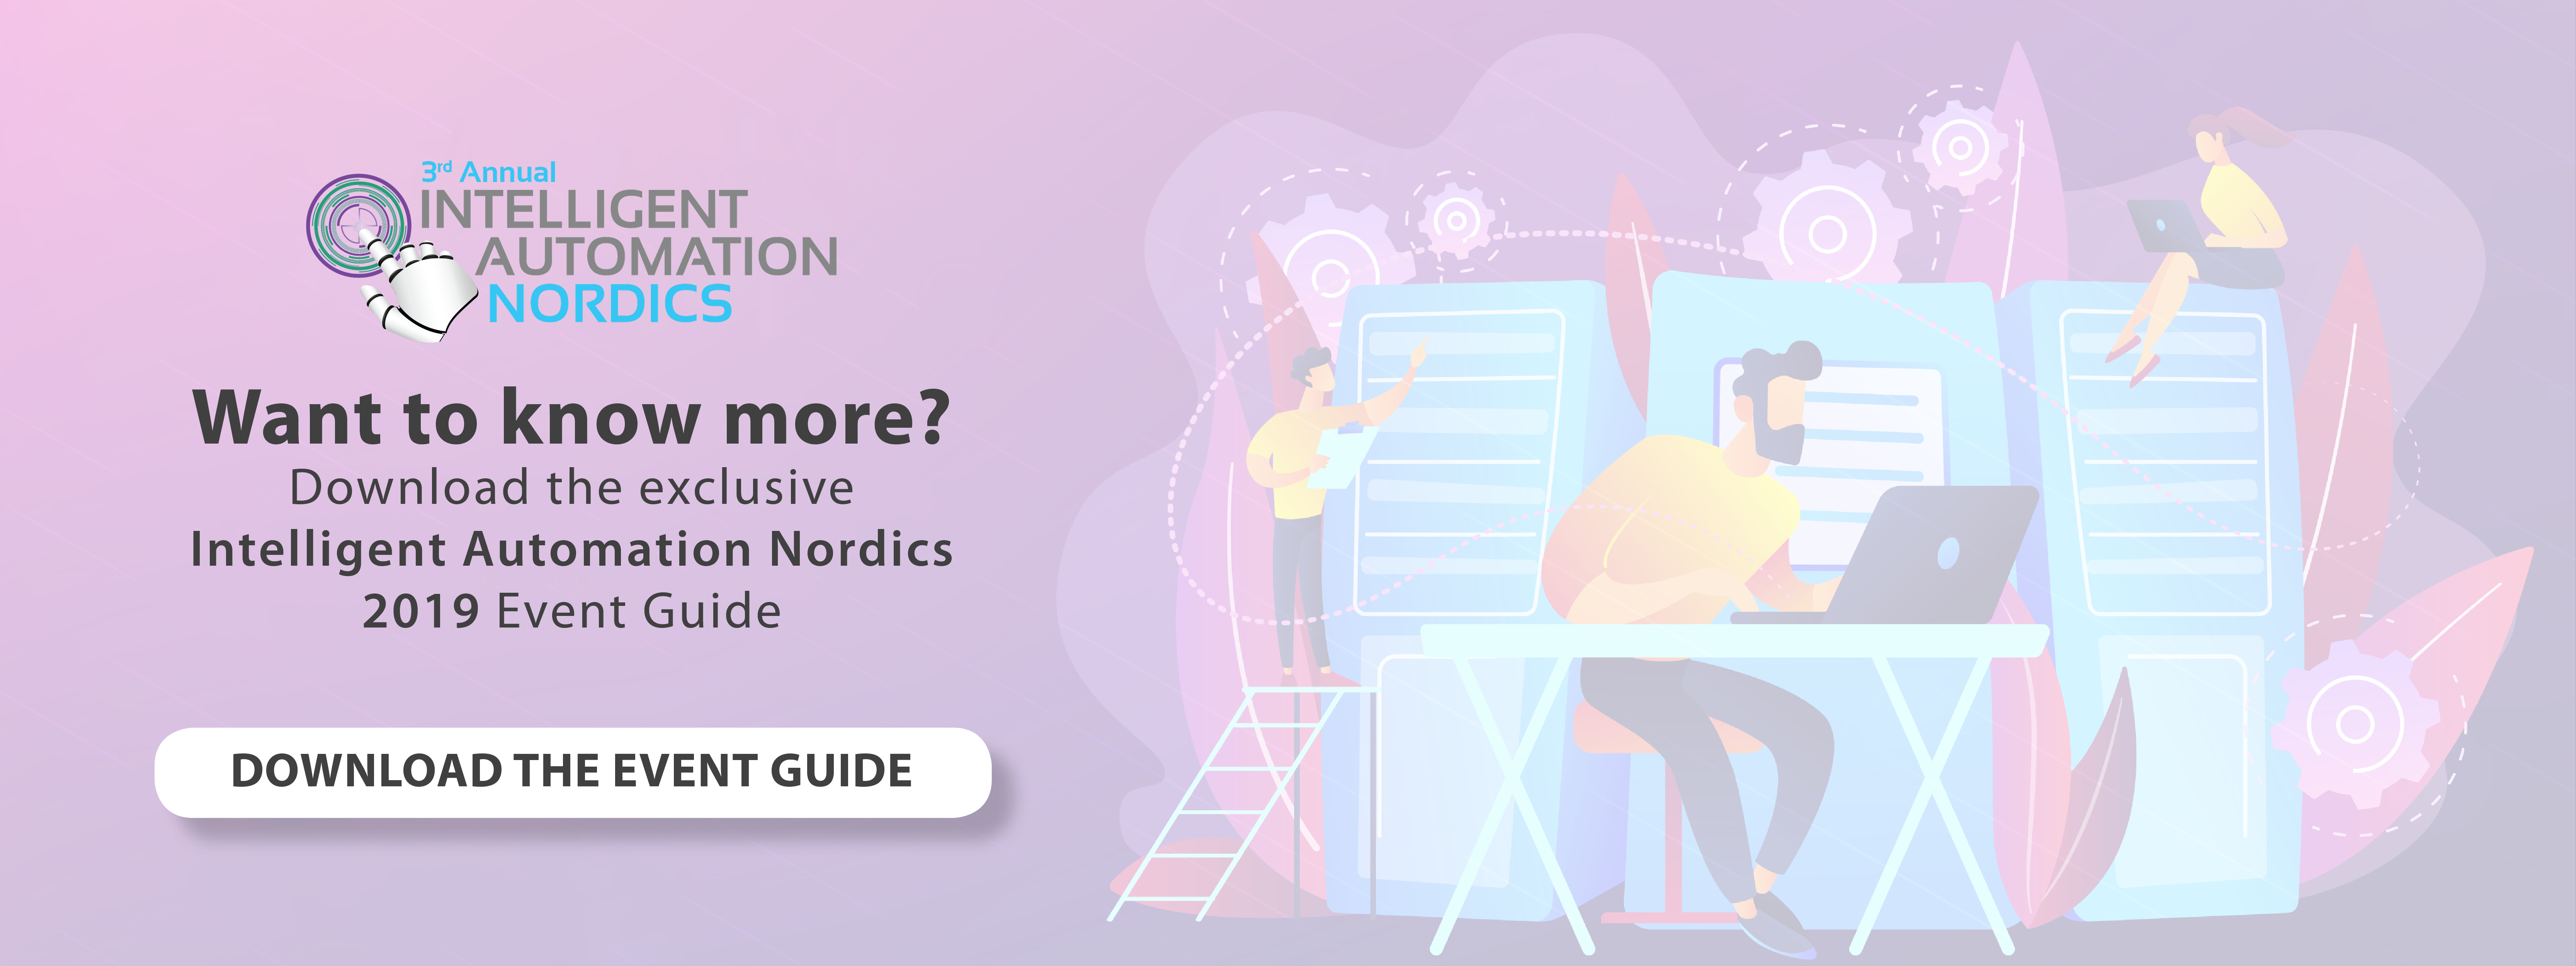 Want to know more? Download the exclusive Intelligent Automation Nordics 2019 Event Guide Download the Event Guide